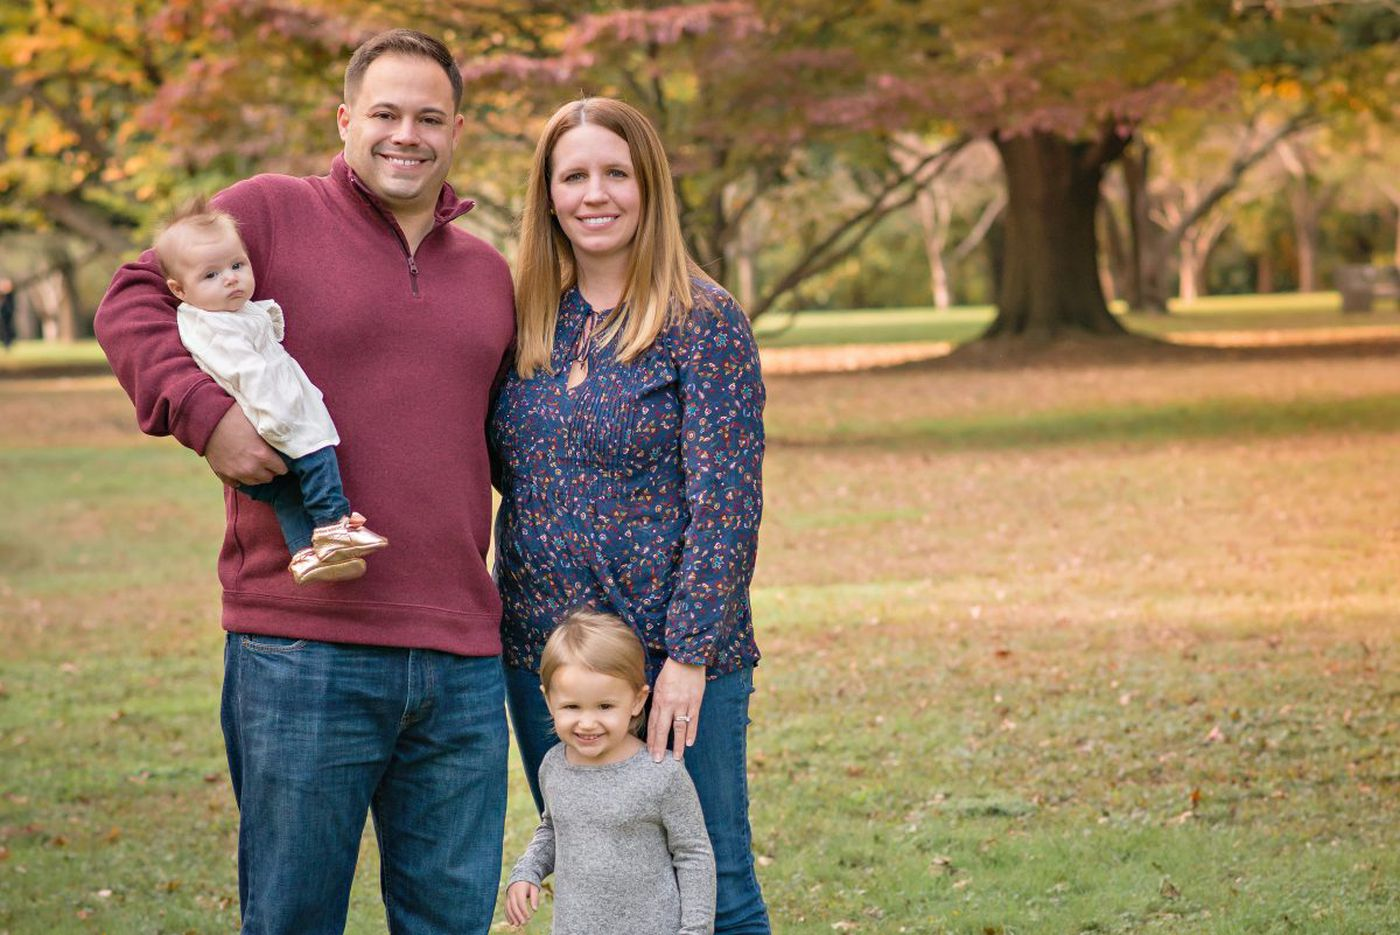 The Parent Trip: Lisa and Chris Rogers of Oreland